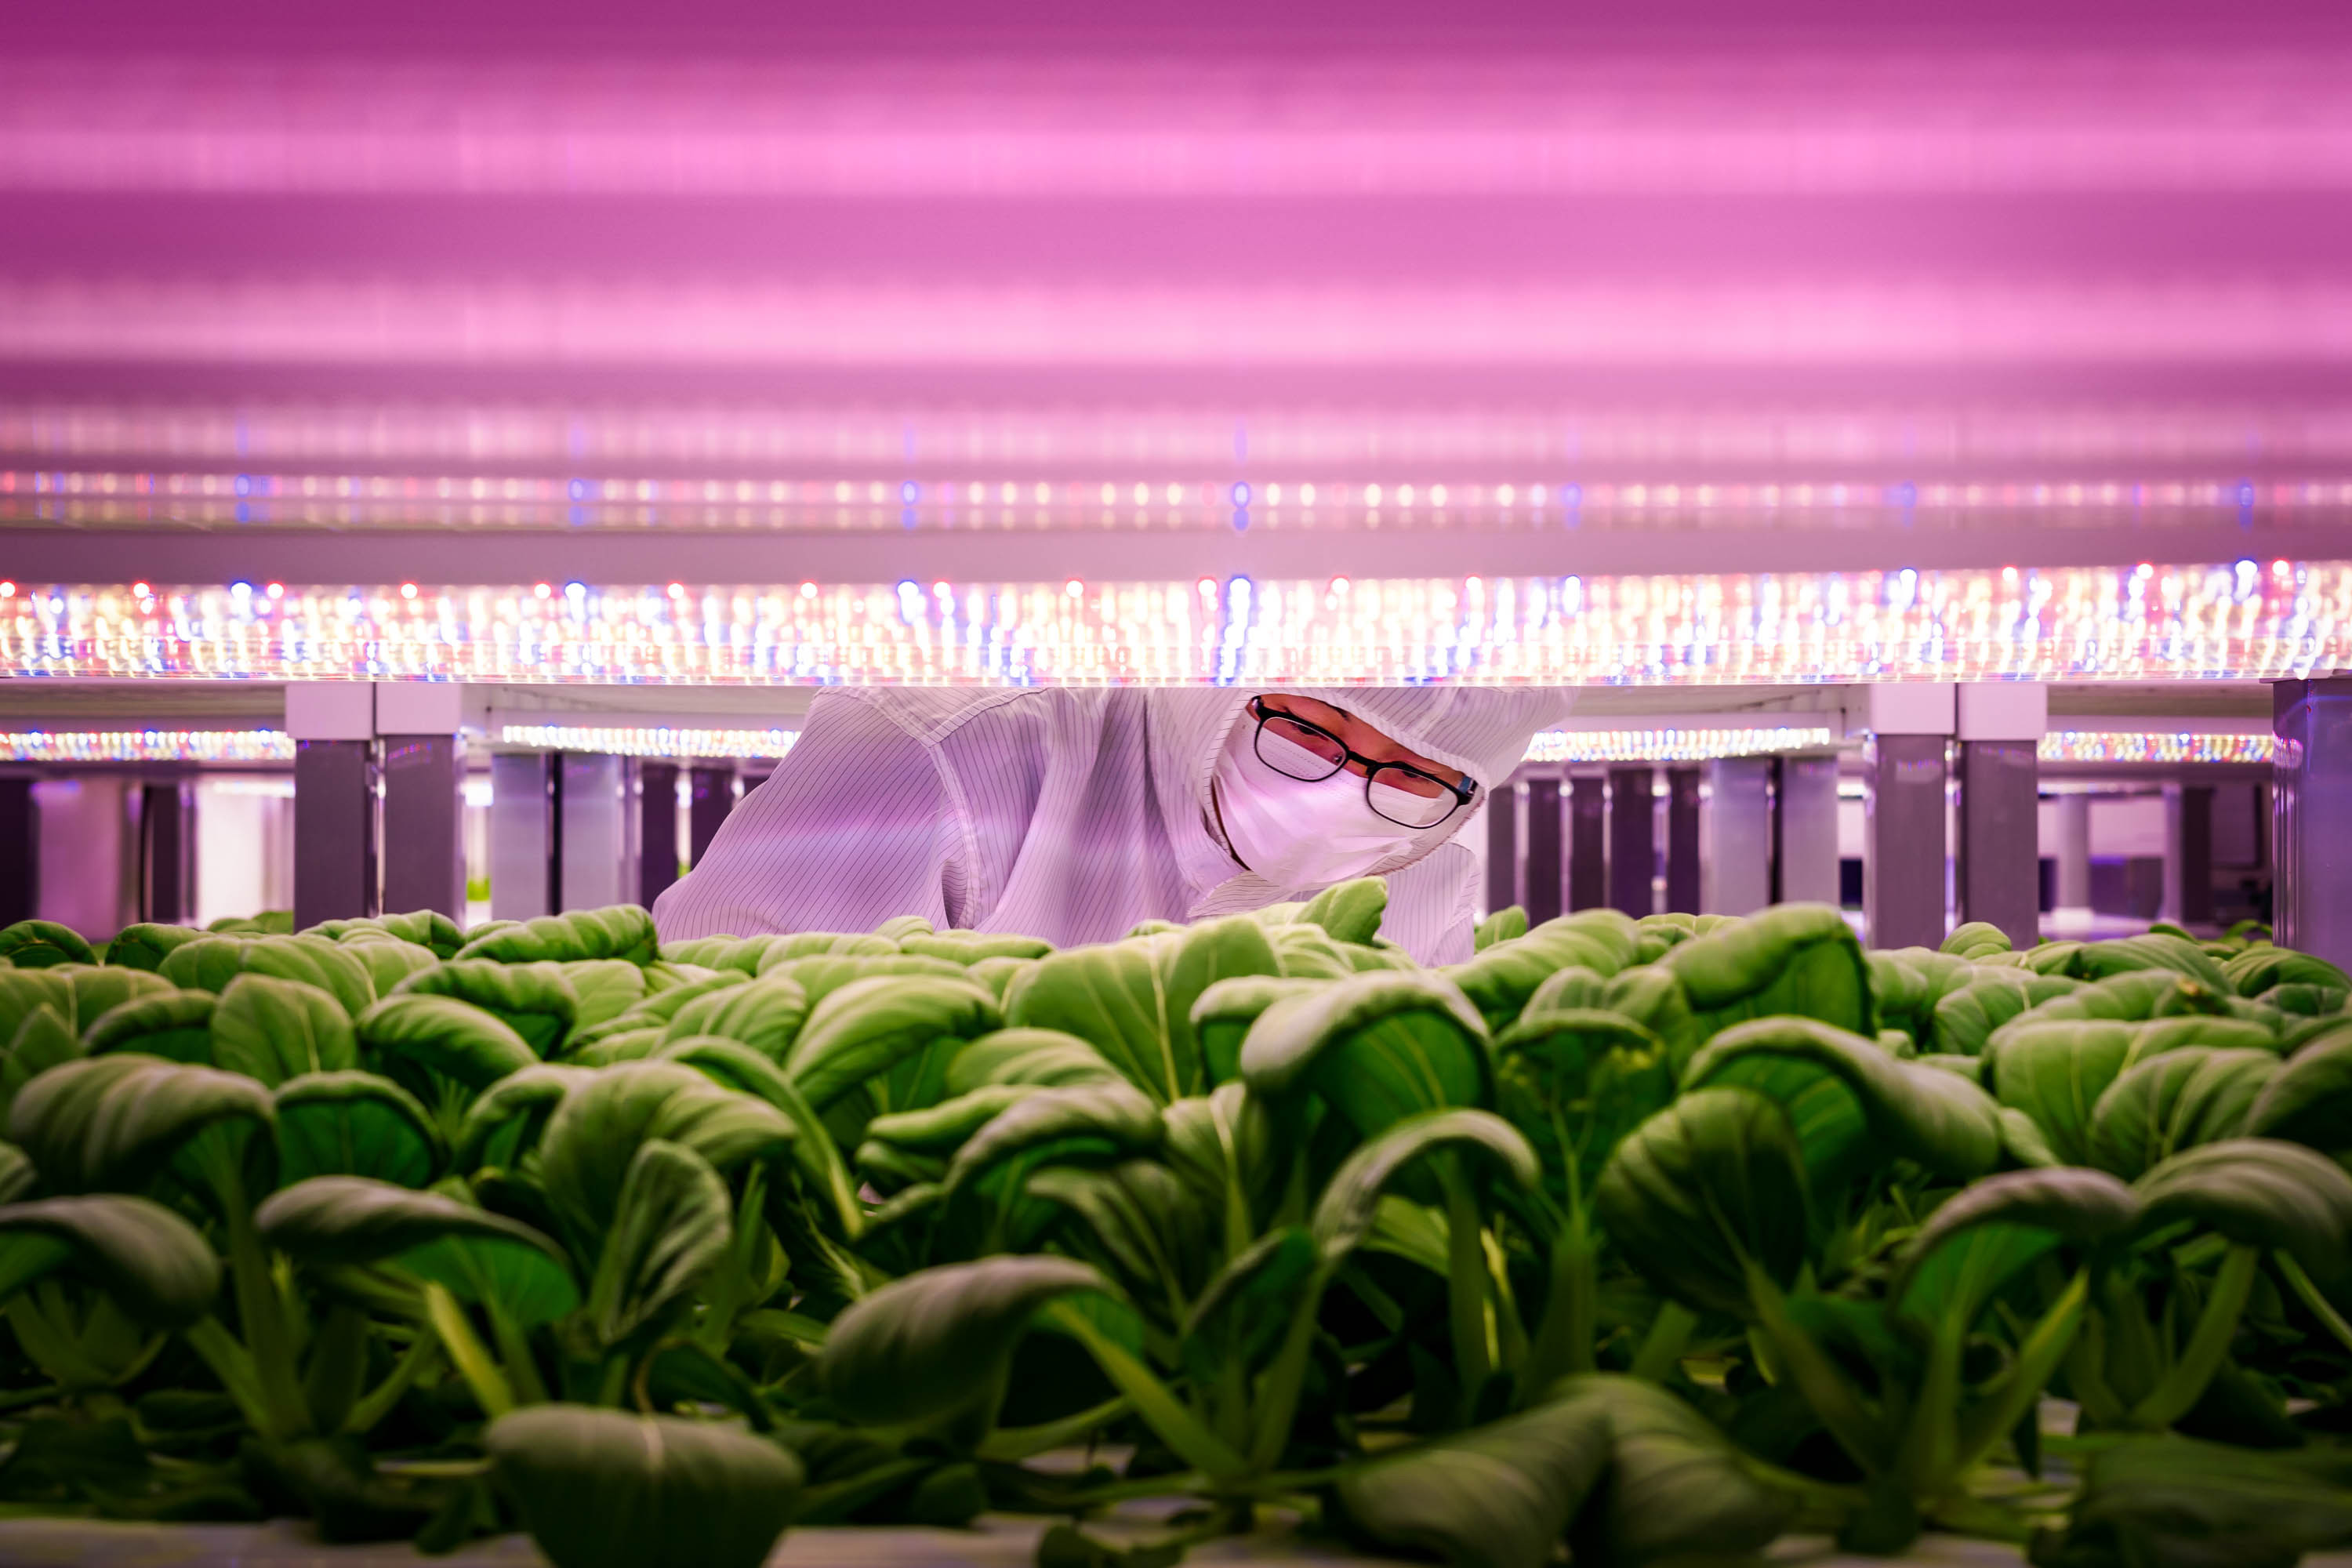 VertiVegies worker inspects plants